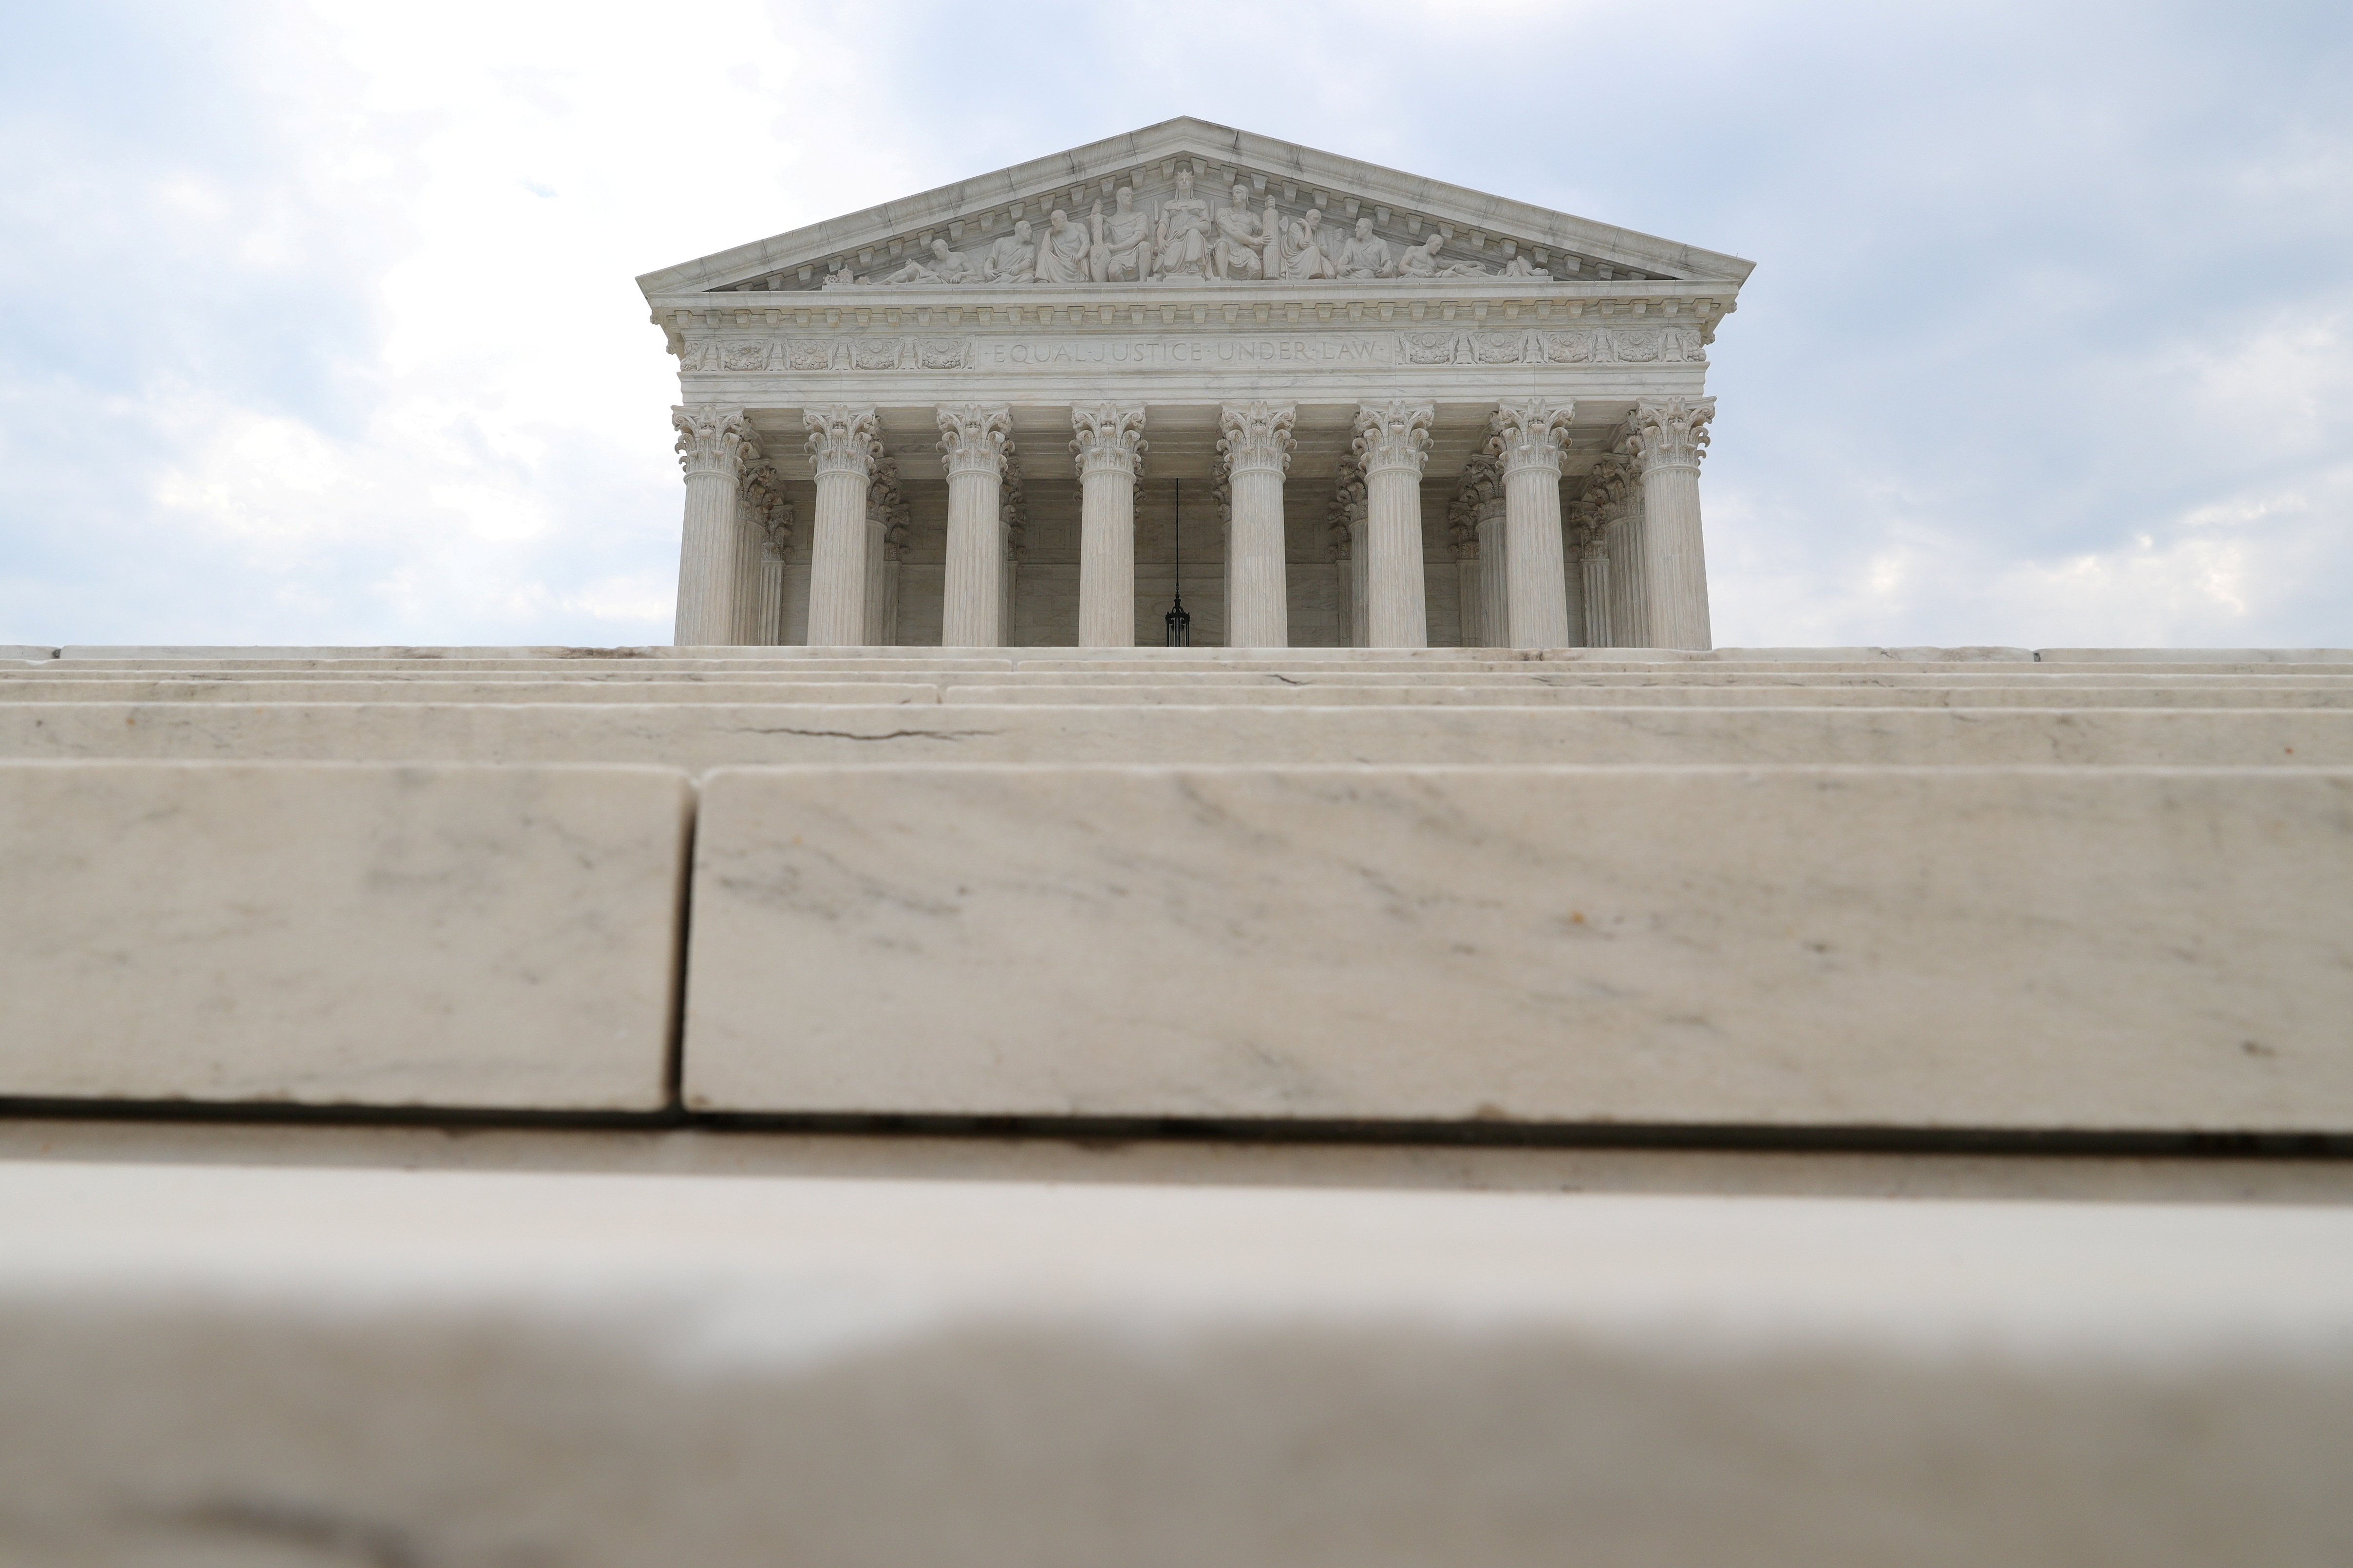 General view of the United States Supreme Court Building, as a series of rulings are issued at the United States Supreme Court in Washington, U.S., July 6, 2020. REUTERS/Tom Brenner/File Photo